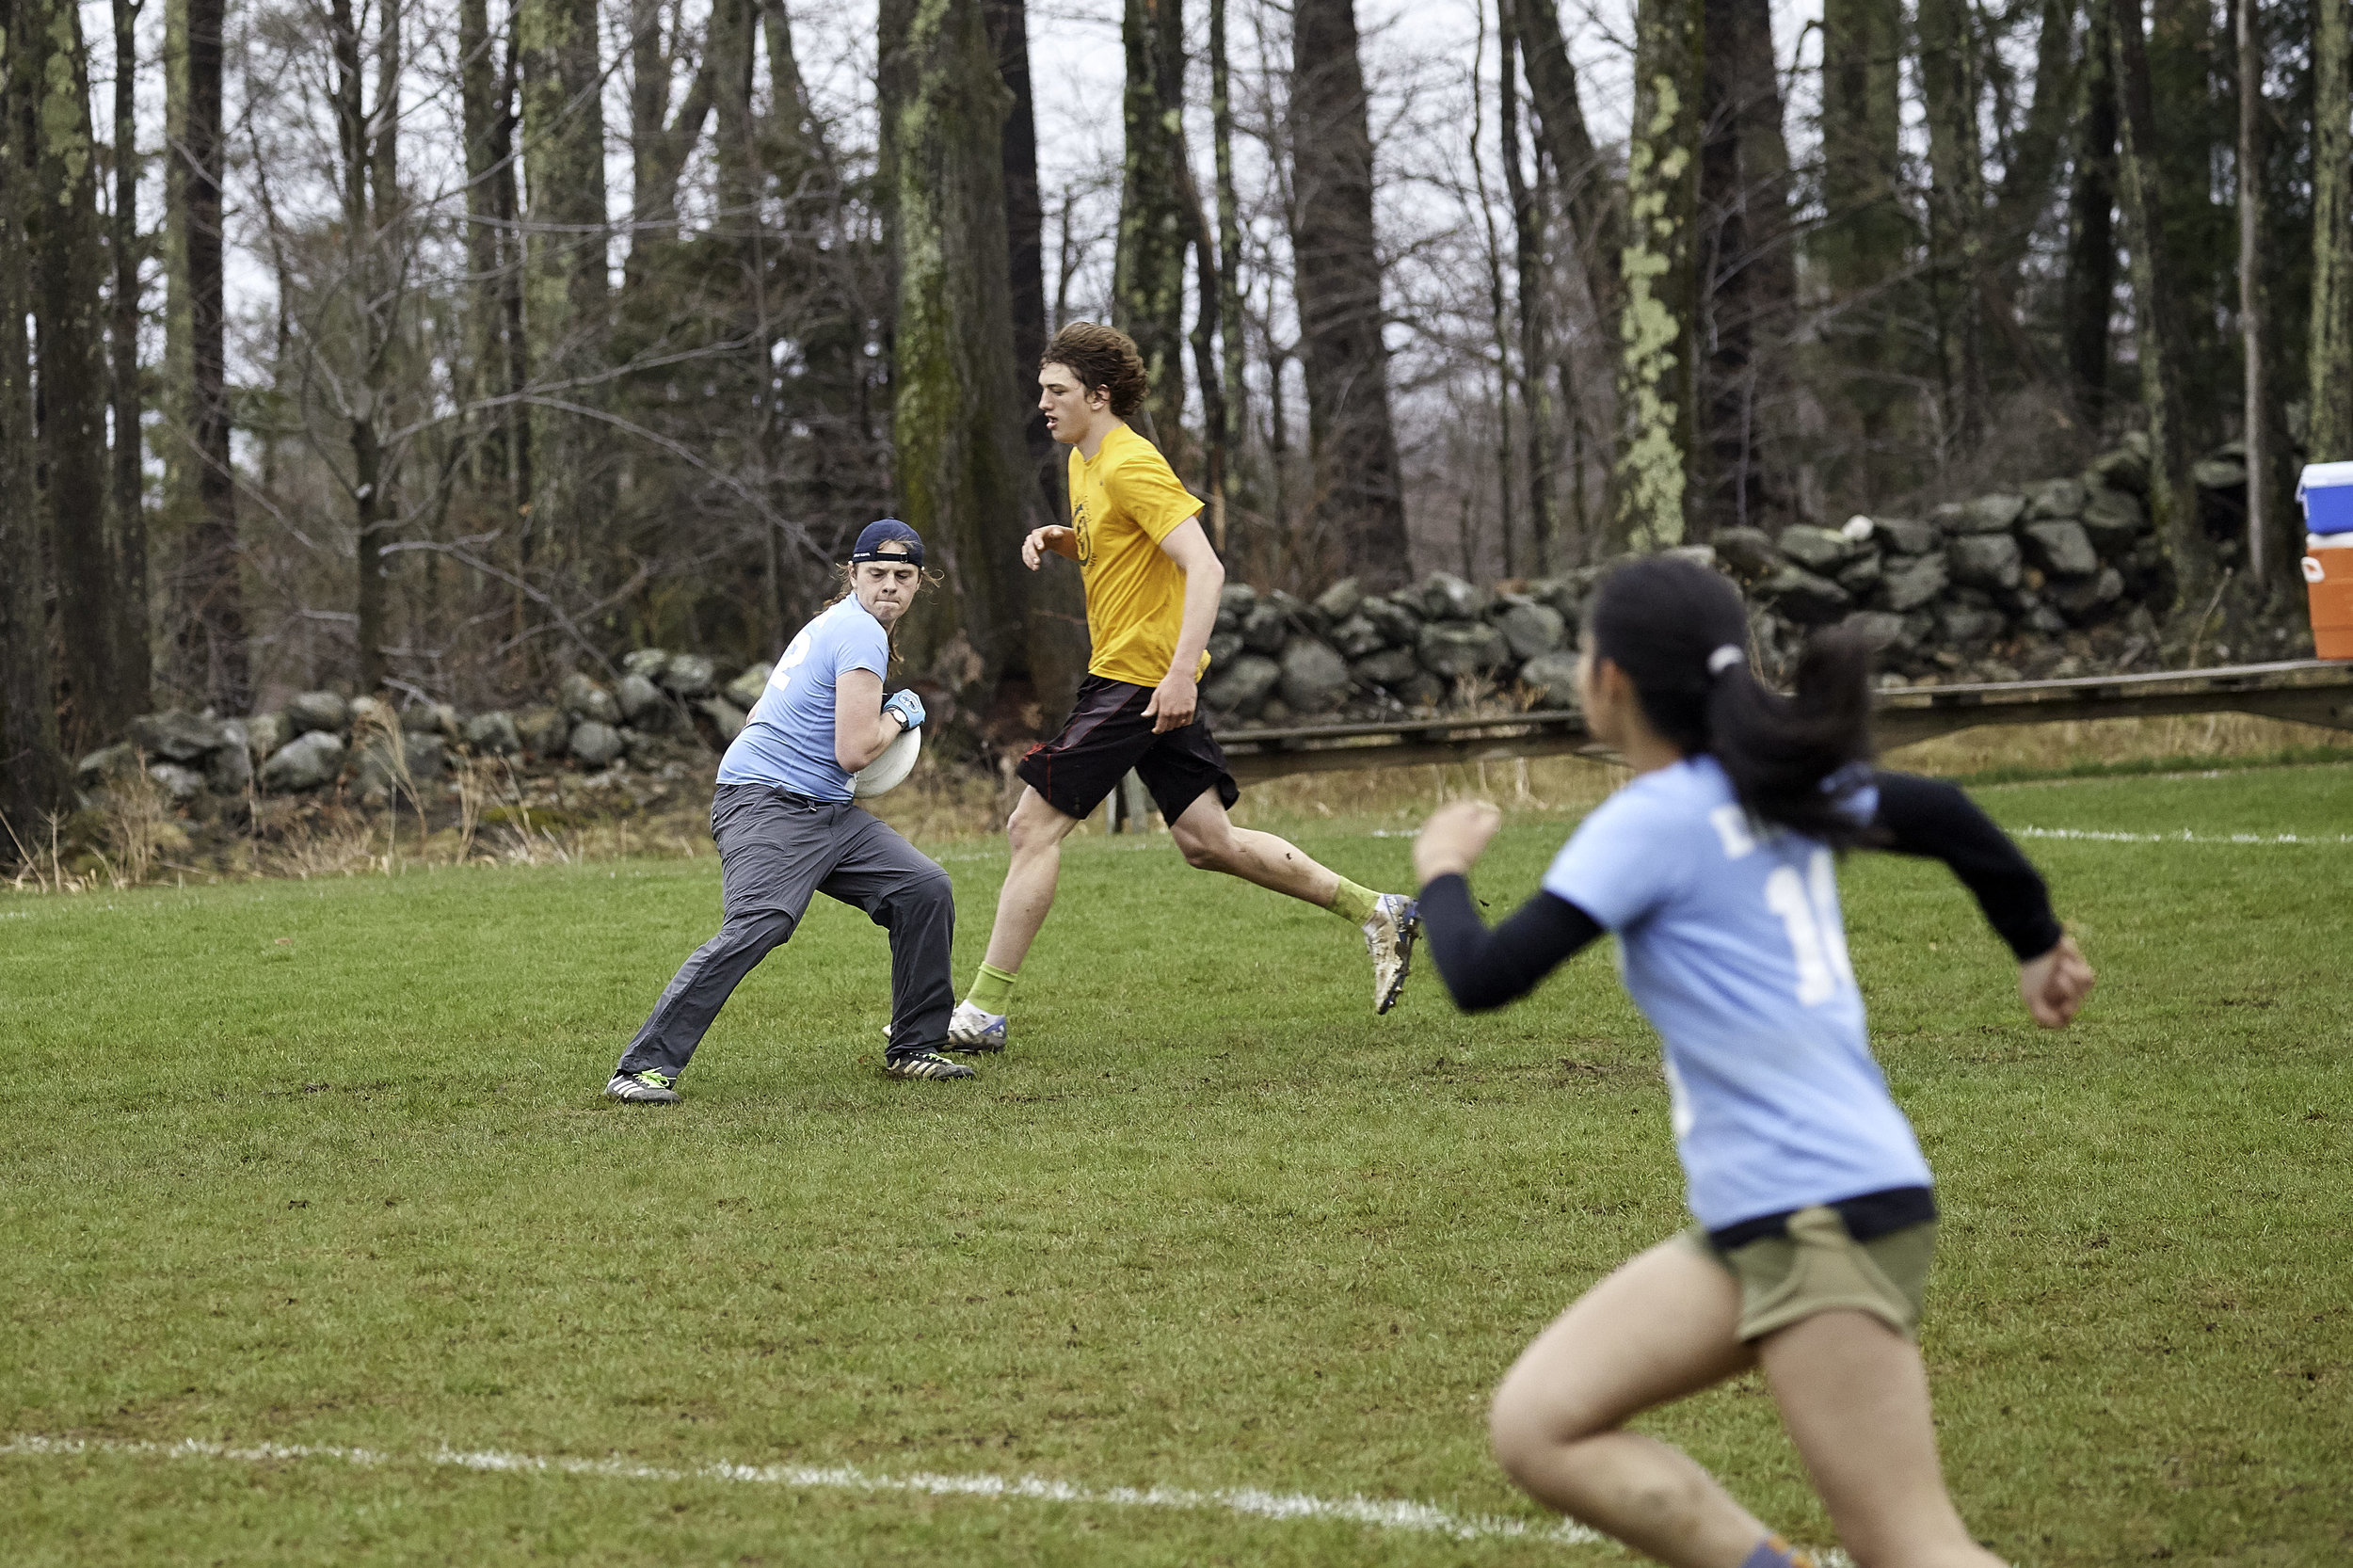 Ultimate Frisbee vs. Eagle Hill School - May 3, 2019 - 188930.jpg